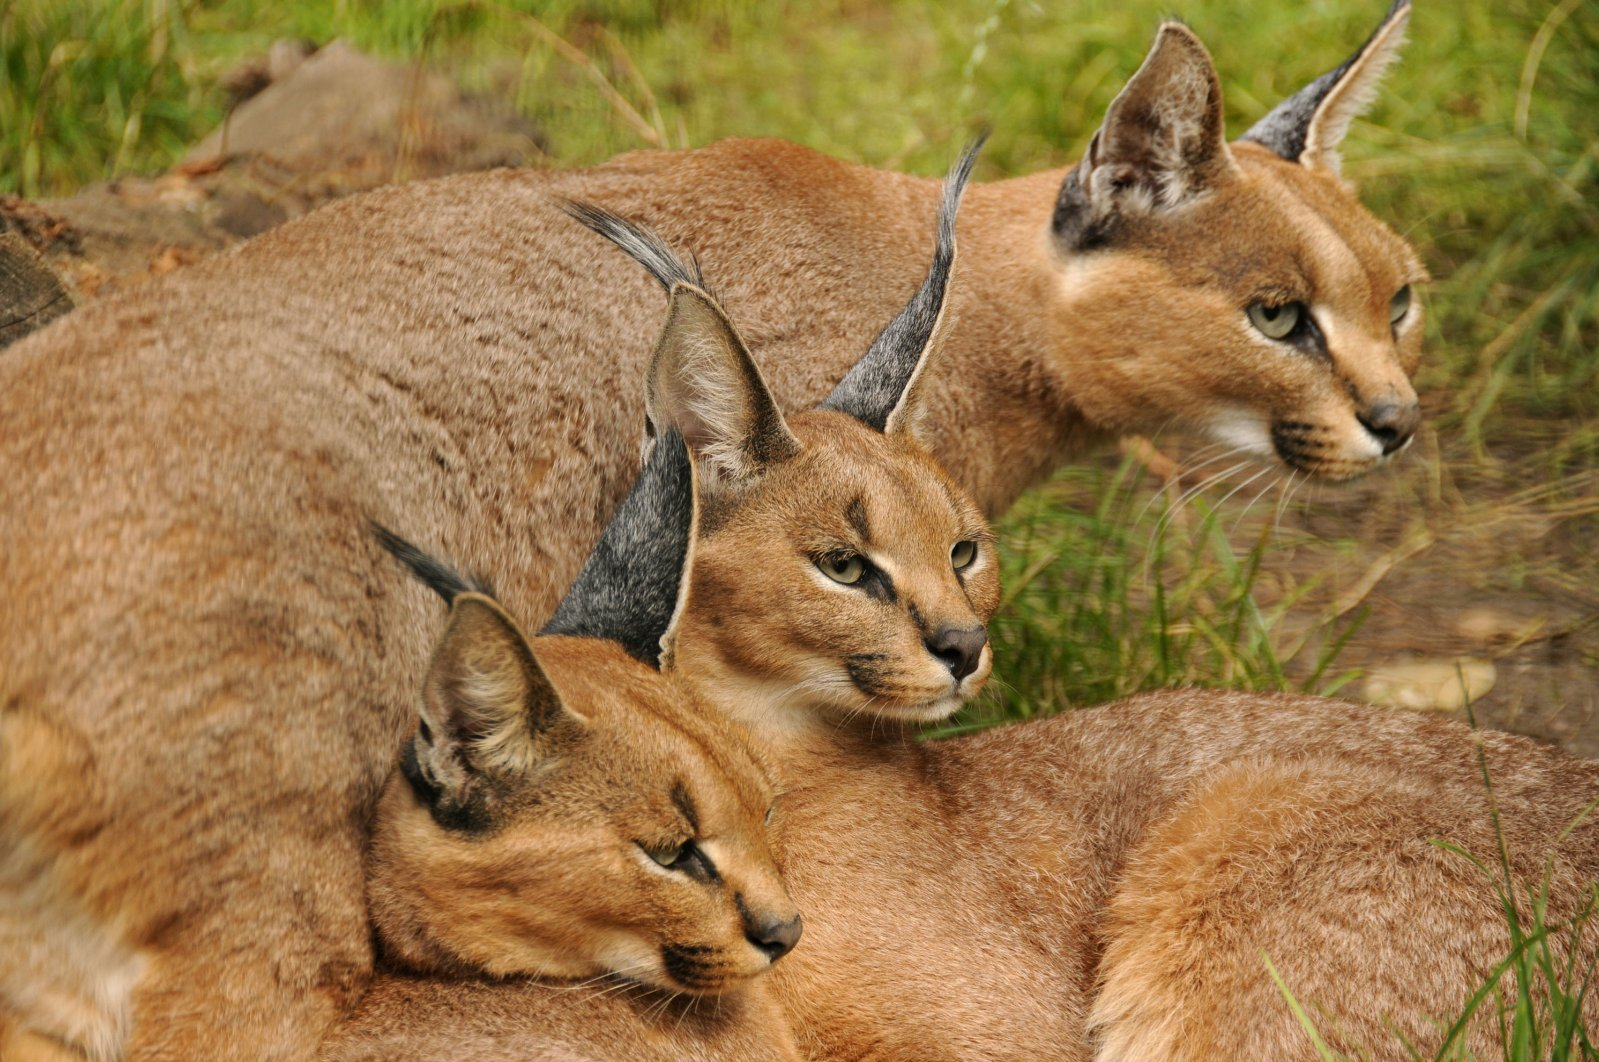 Three caracals in Lichtenberg Zoo, Berlin, Germany. (Getty Images)